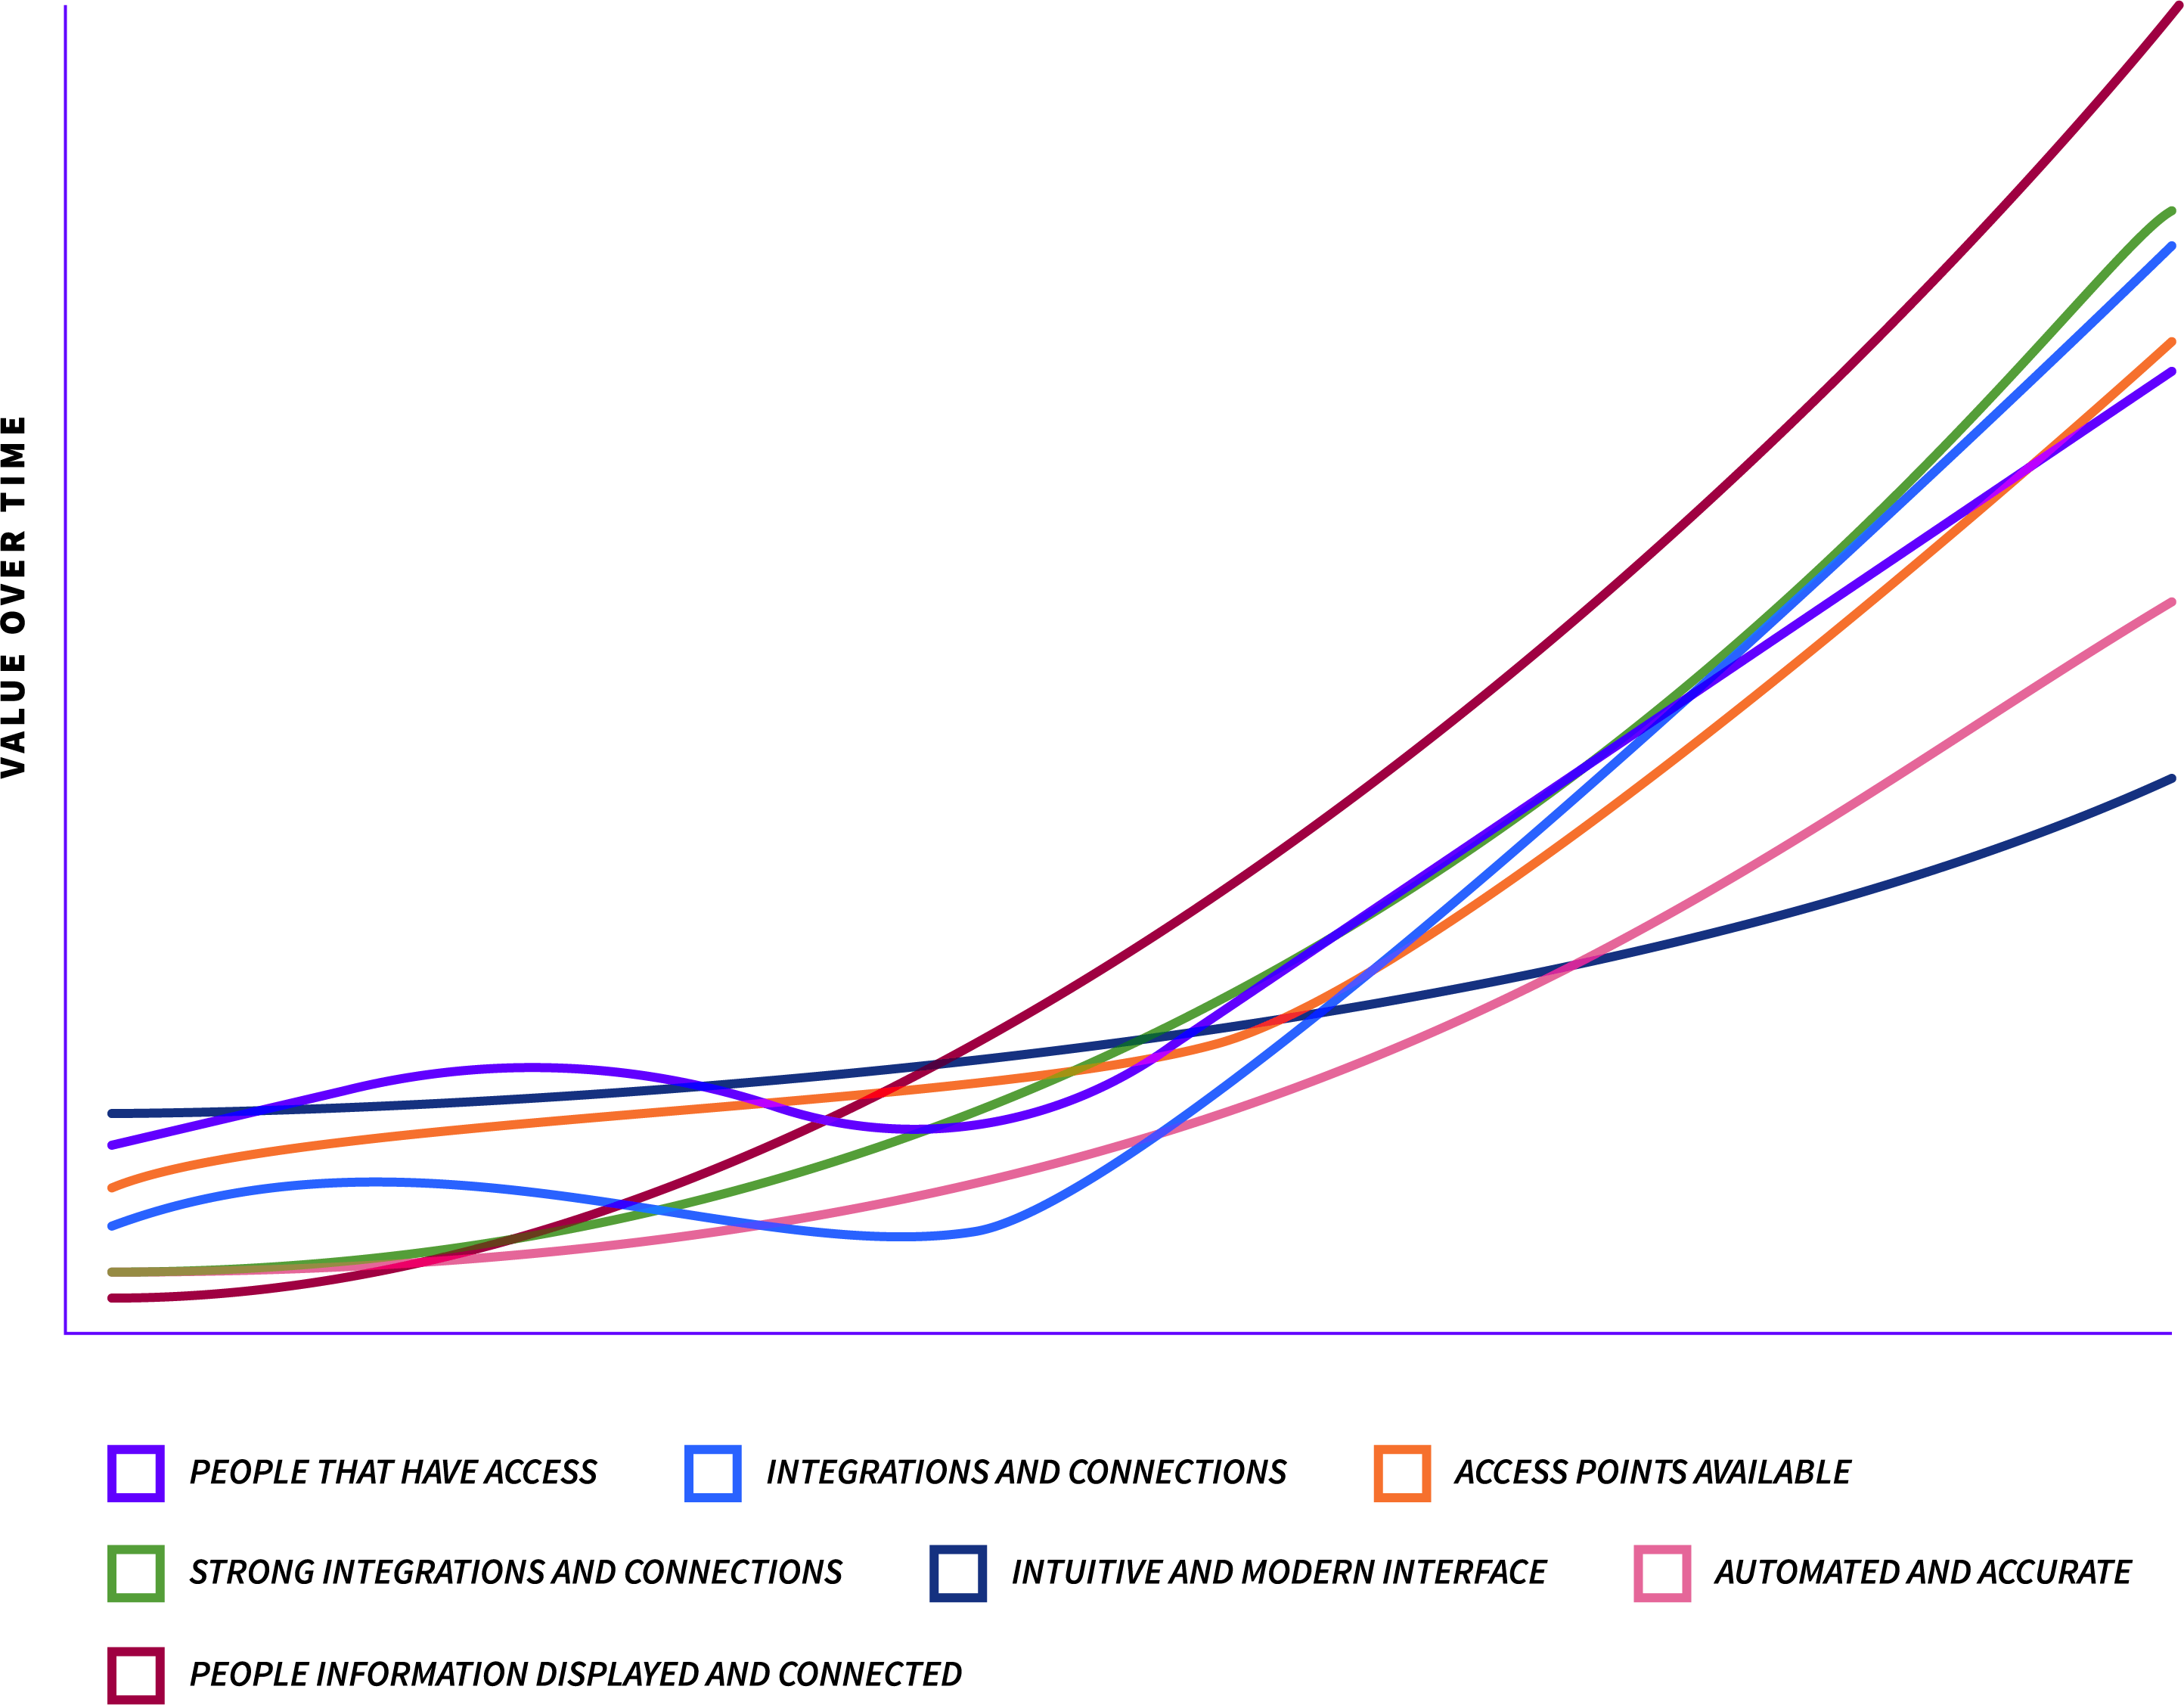 A line graph showing the ROI of an organizational chart